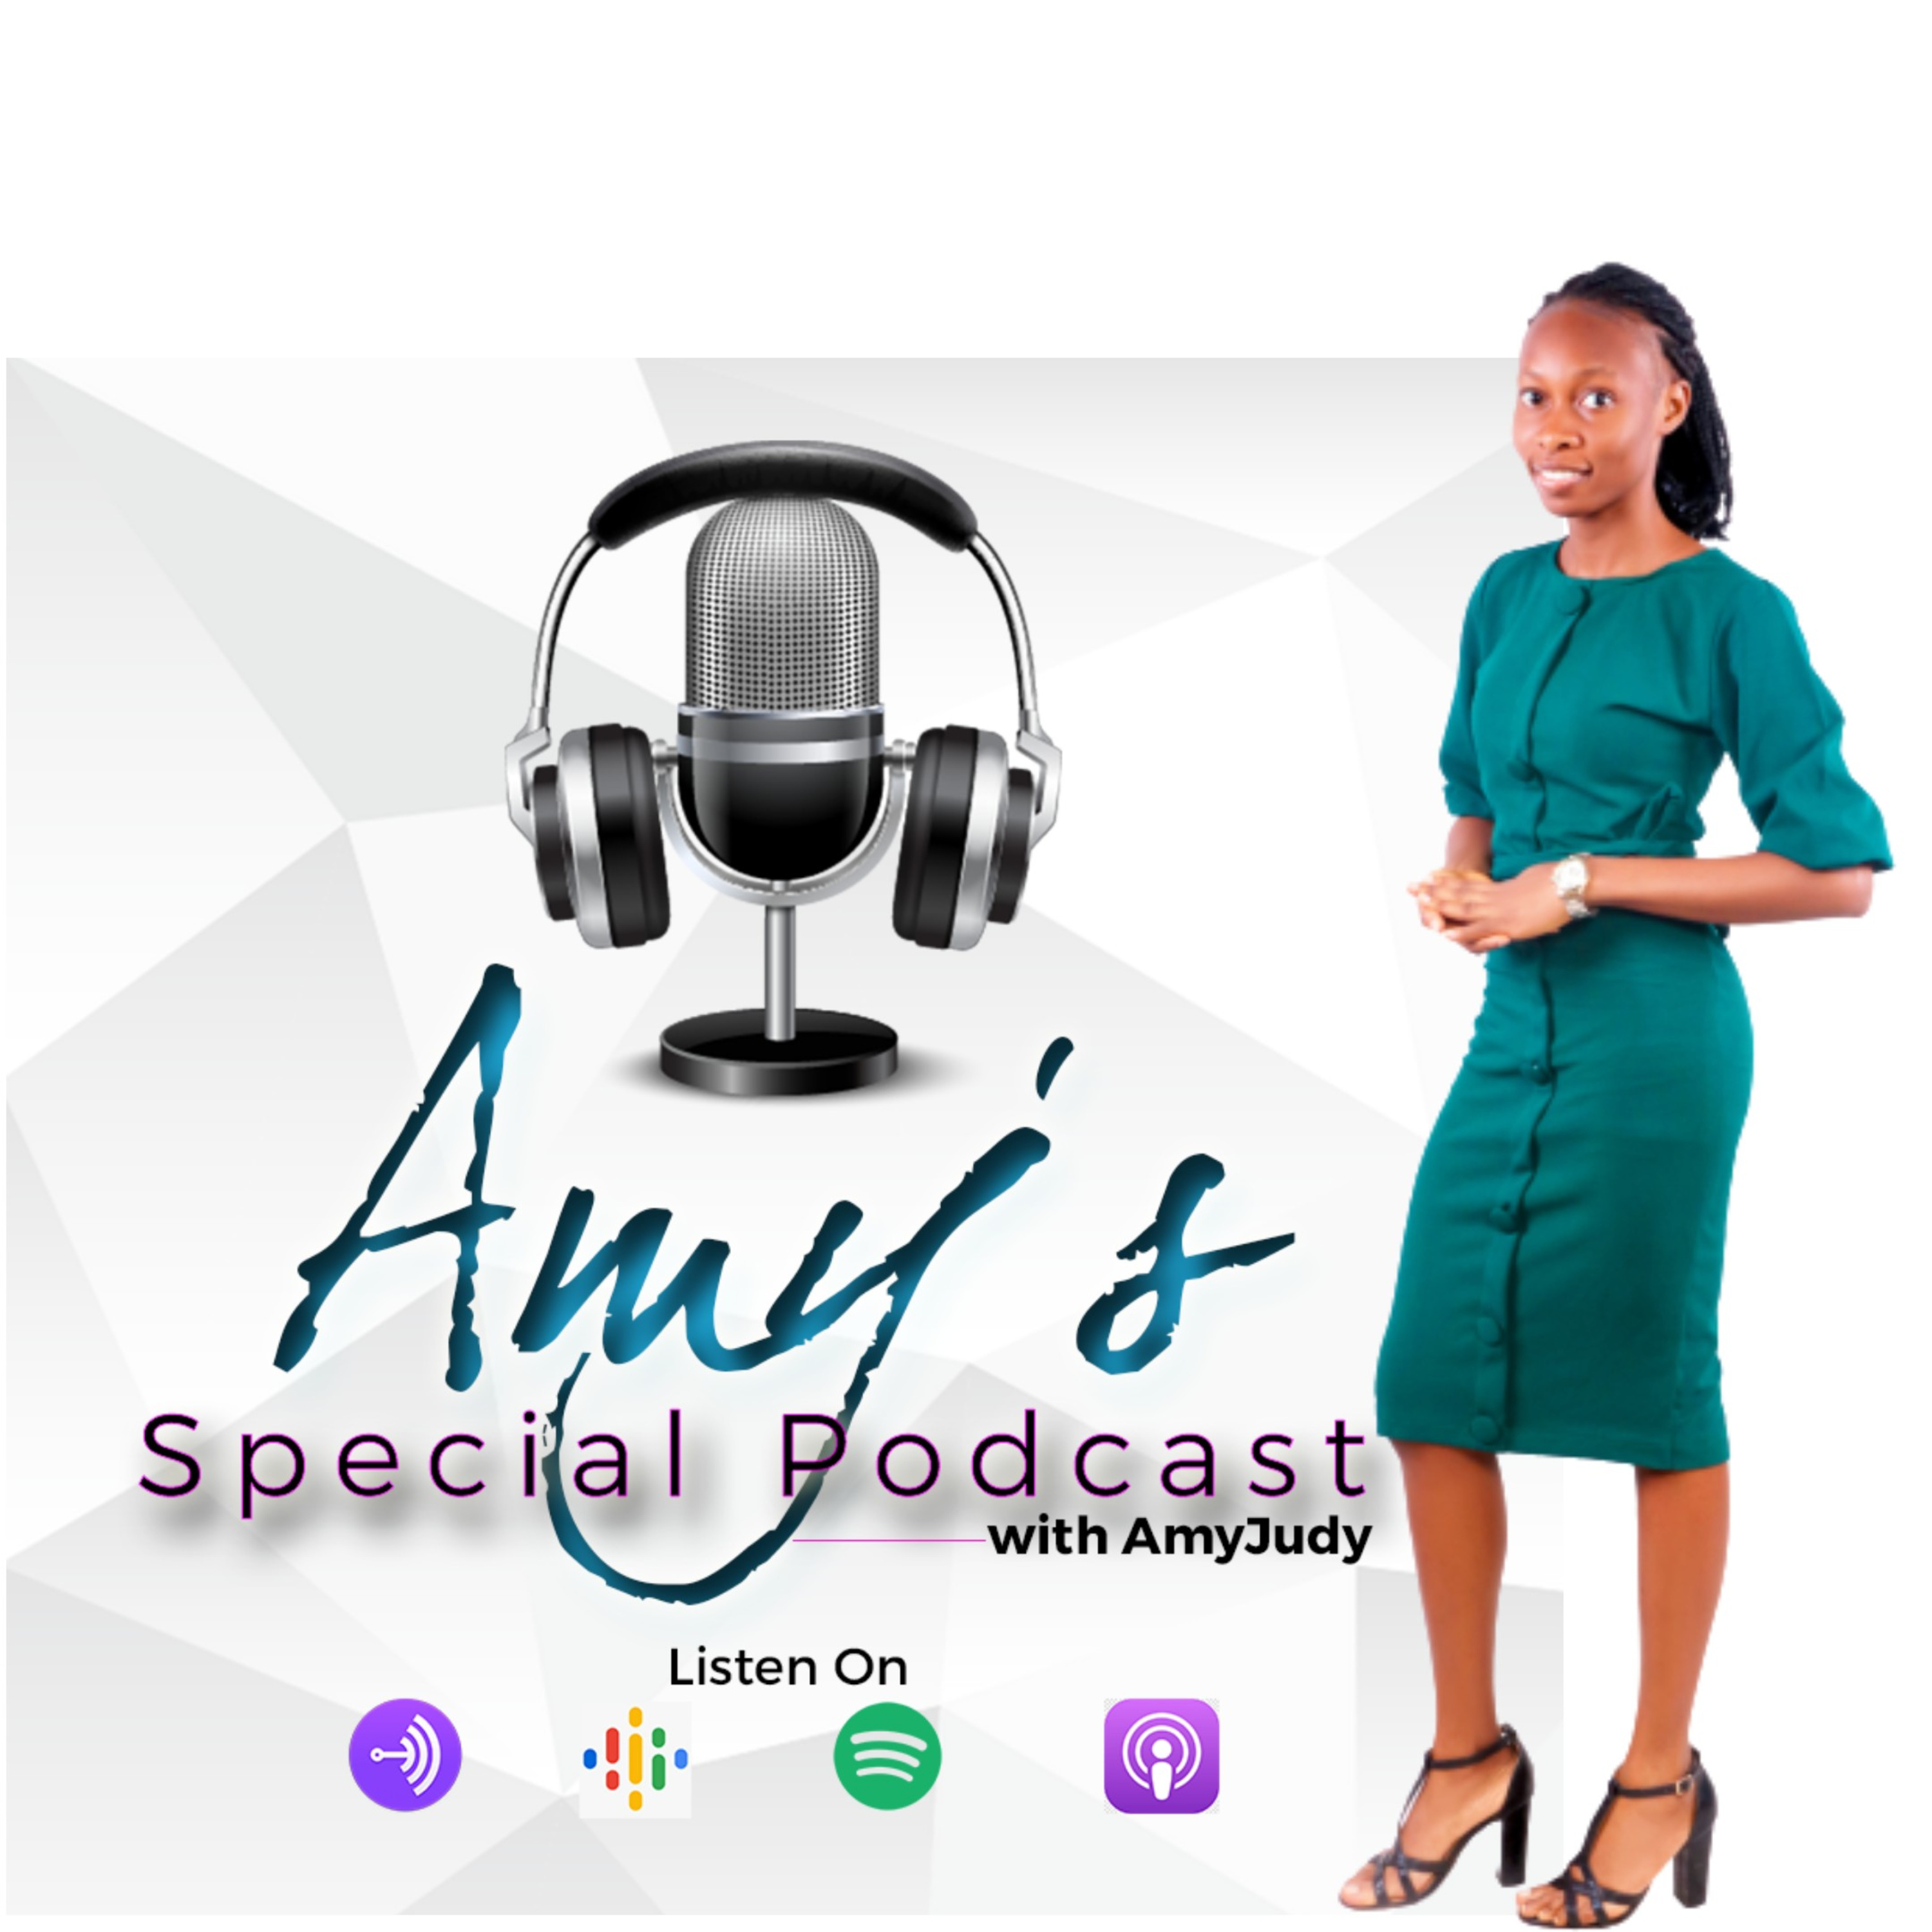 Amy's Special Podcast podcast